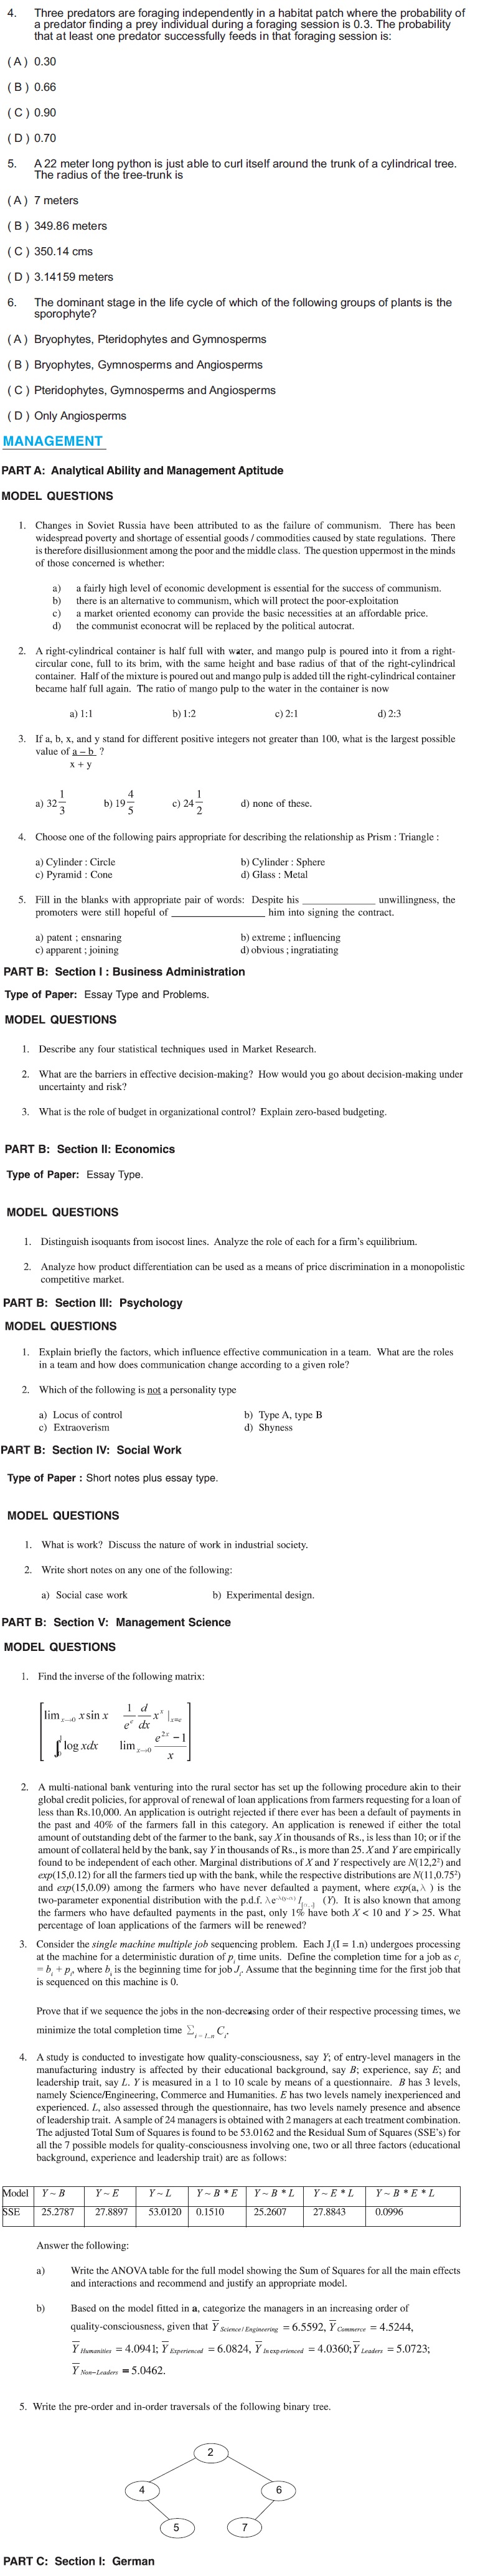 IISc Admissions 2013 Model Question Paper - Research Program (Ph D/MSc Engg)